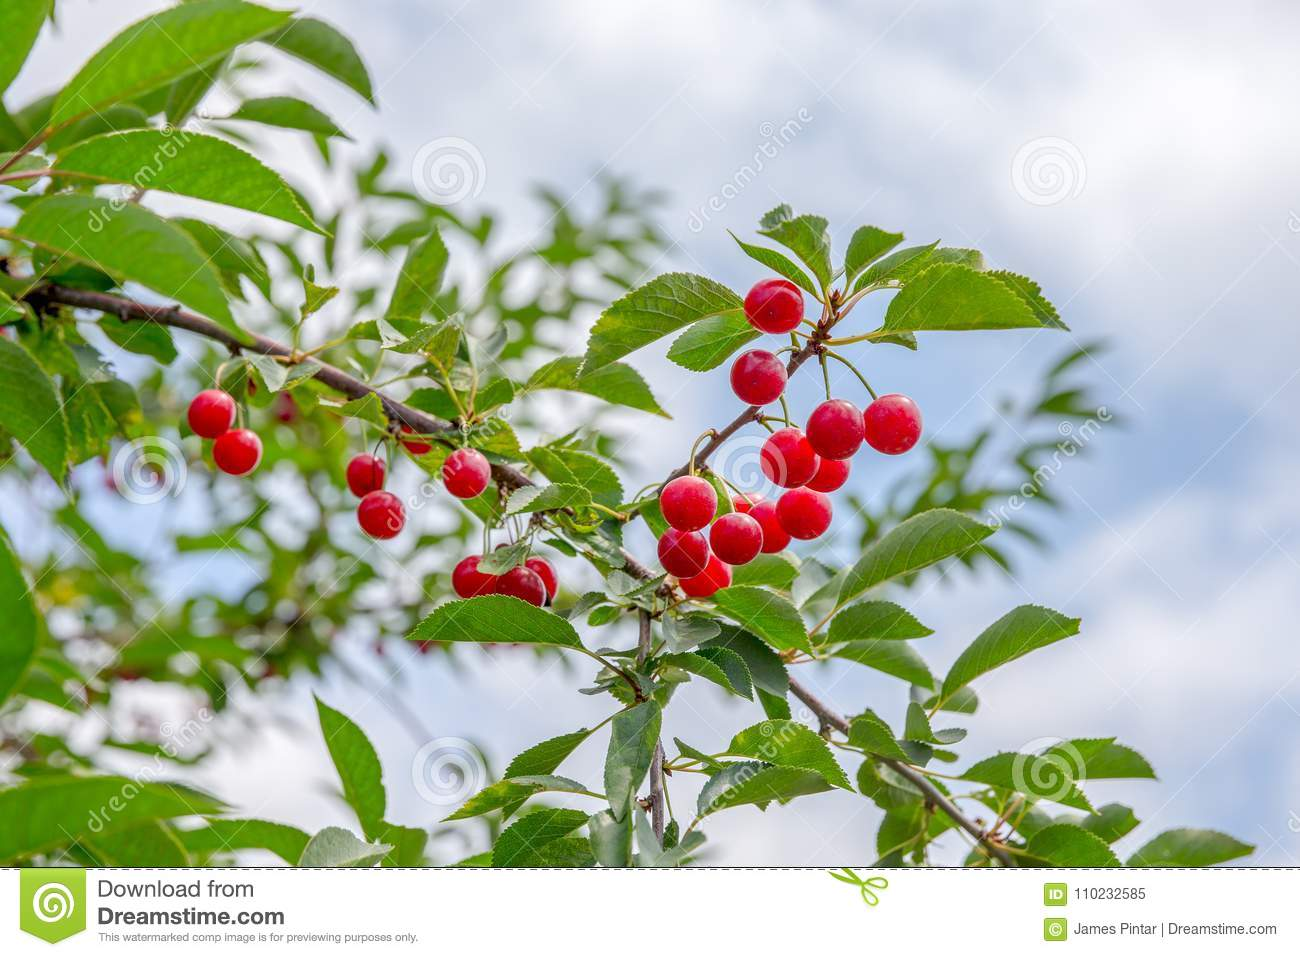 Ripe Cherries on a Tree stock image. Image of food, fruit - 110232585